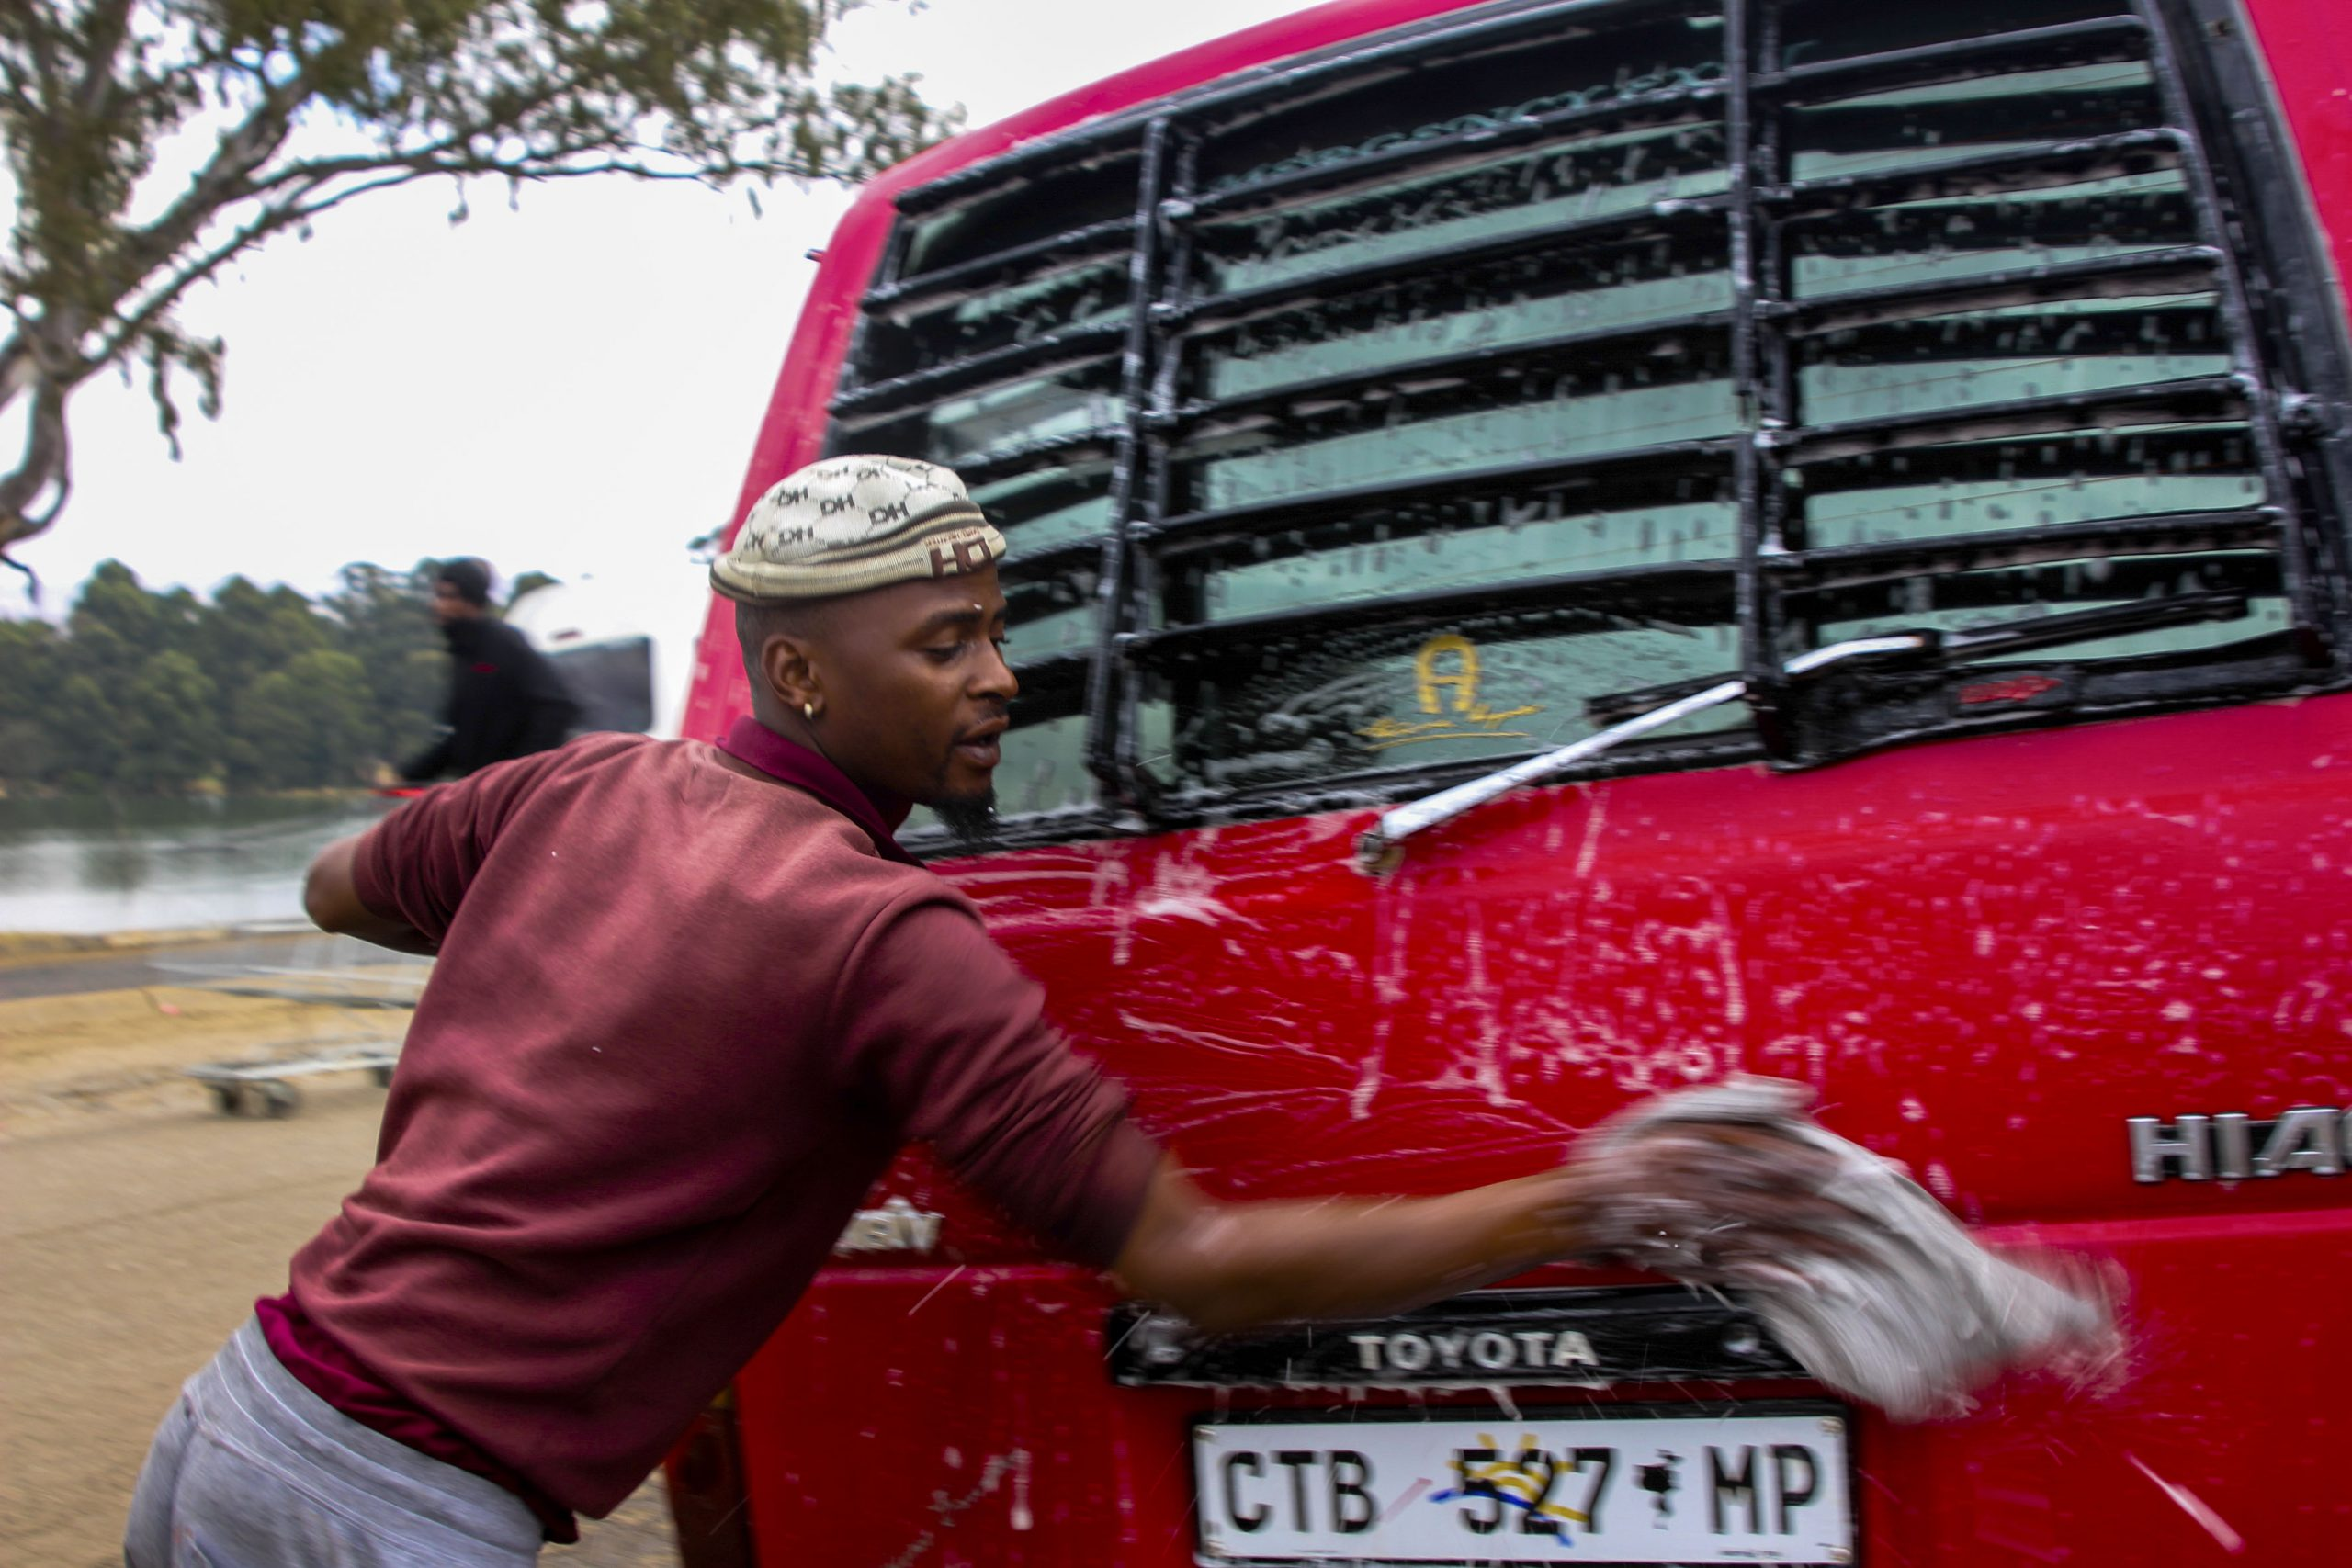 8 June 2020: Sibusiso Motha, 26, survives by washing taxis at Mkhondo taxi rank. If the drivers don't make enough money through trips, his job is directly affected as it relies on the taxi operators' cash flow. (Photograph by Magnificent Mndebele)